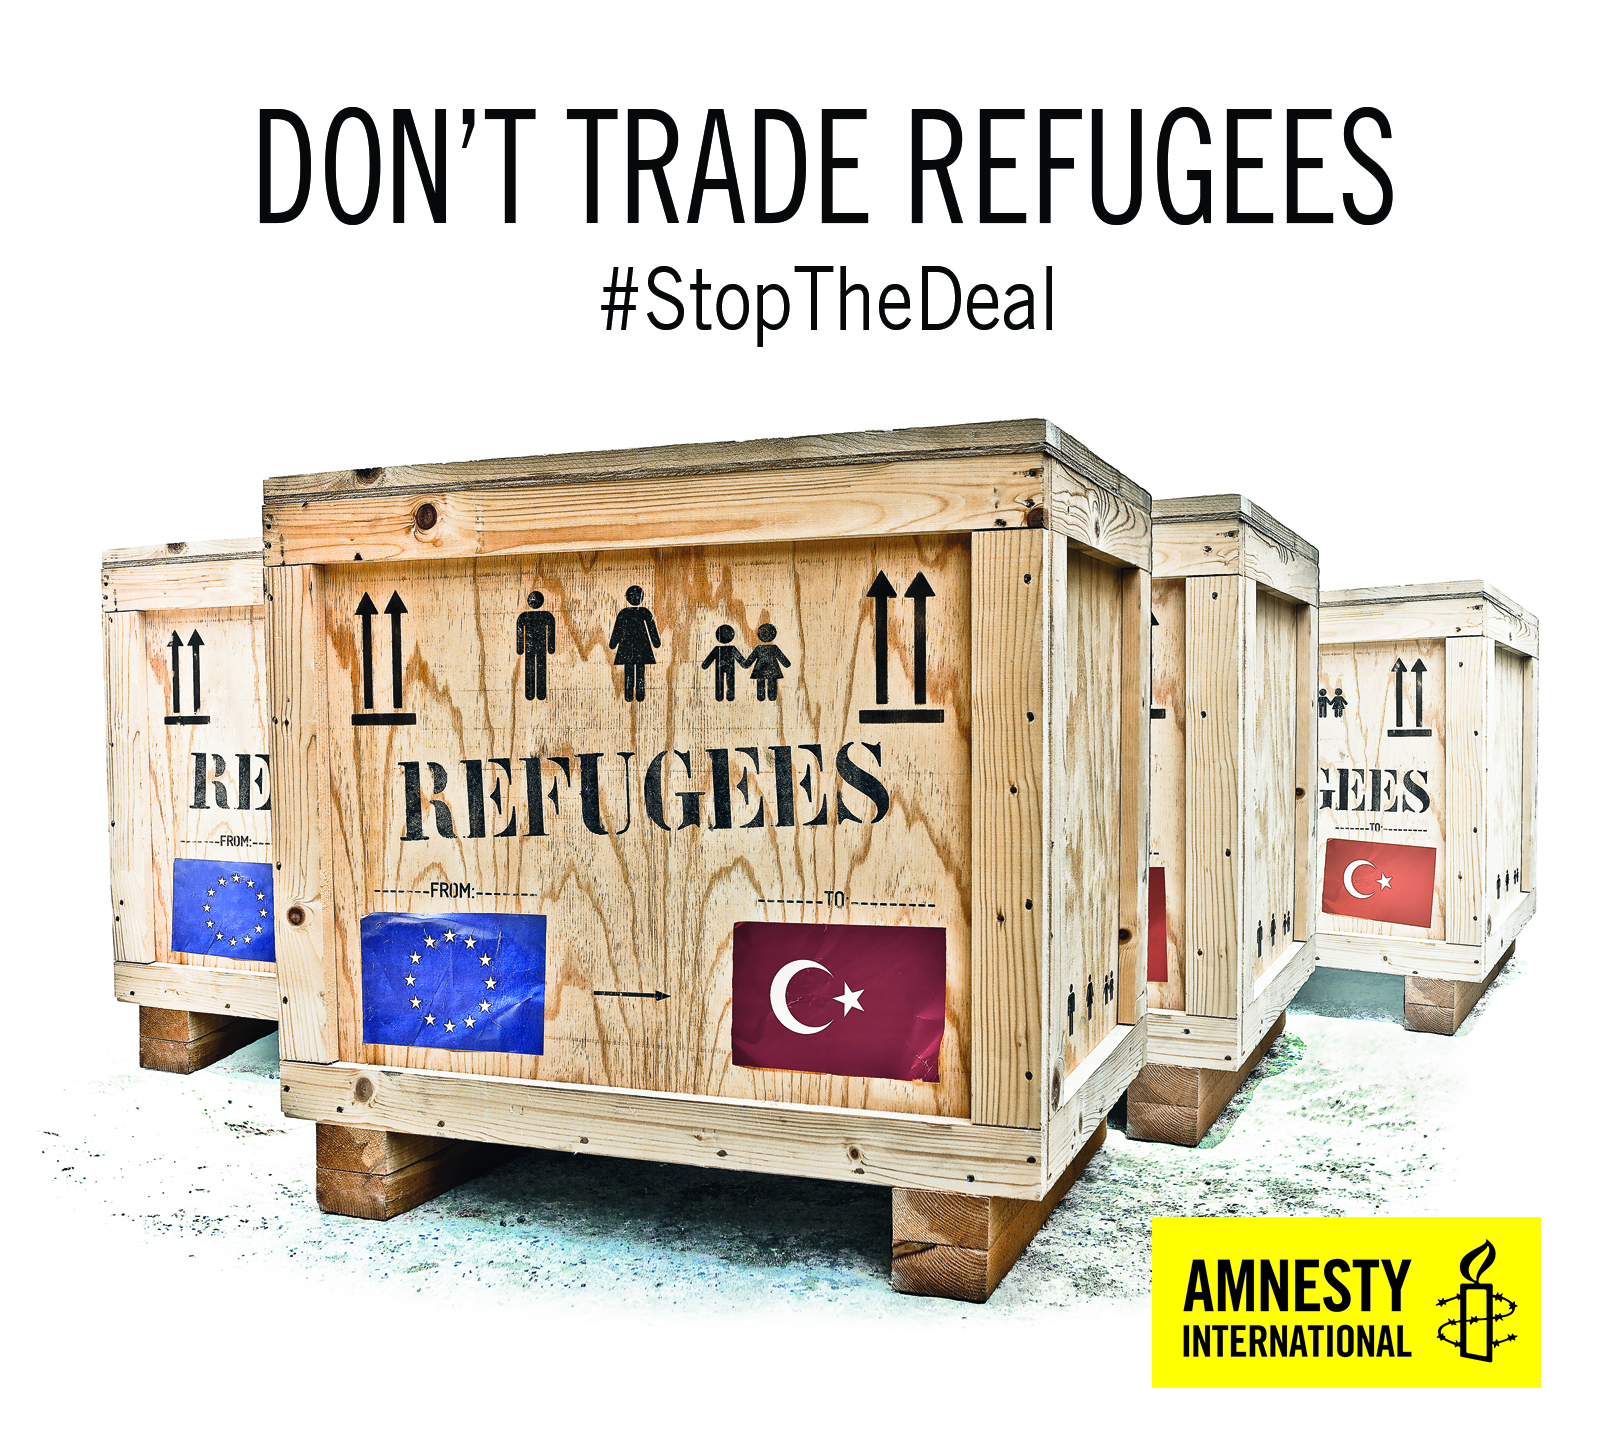 stopthedeal-refugees-crates.jpg